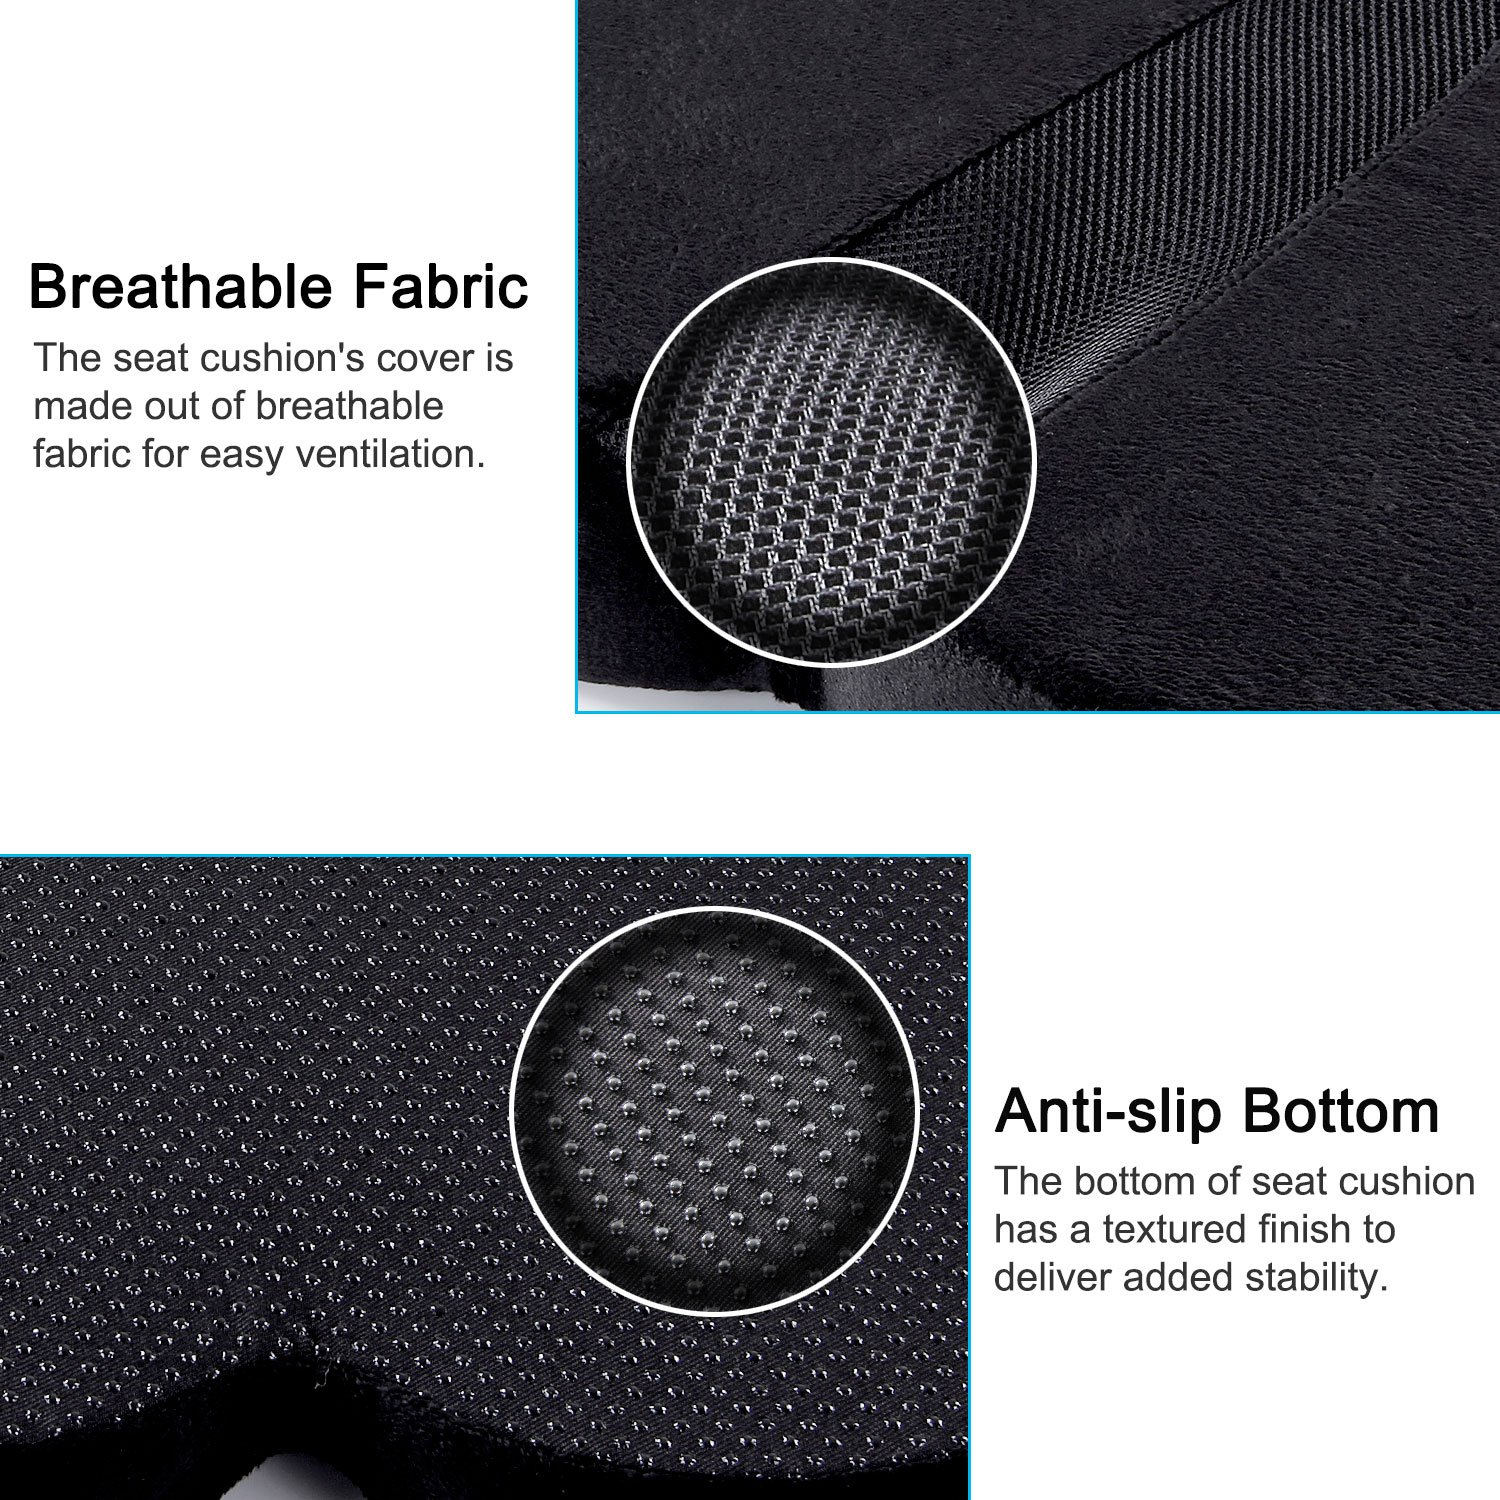 Antaprcis Seat Cushion Pure Memory Foam Confortable Luxury Seat Cushion for Relieve Back, Sciatica and Tailbone Pain - Office Chair and Car Seats Cushion by Antaprcis (Image #4)